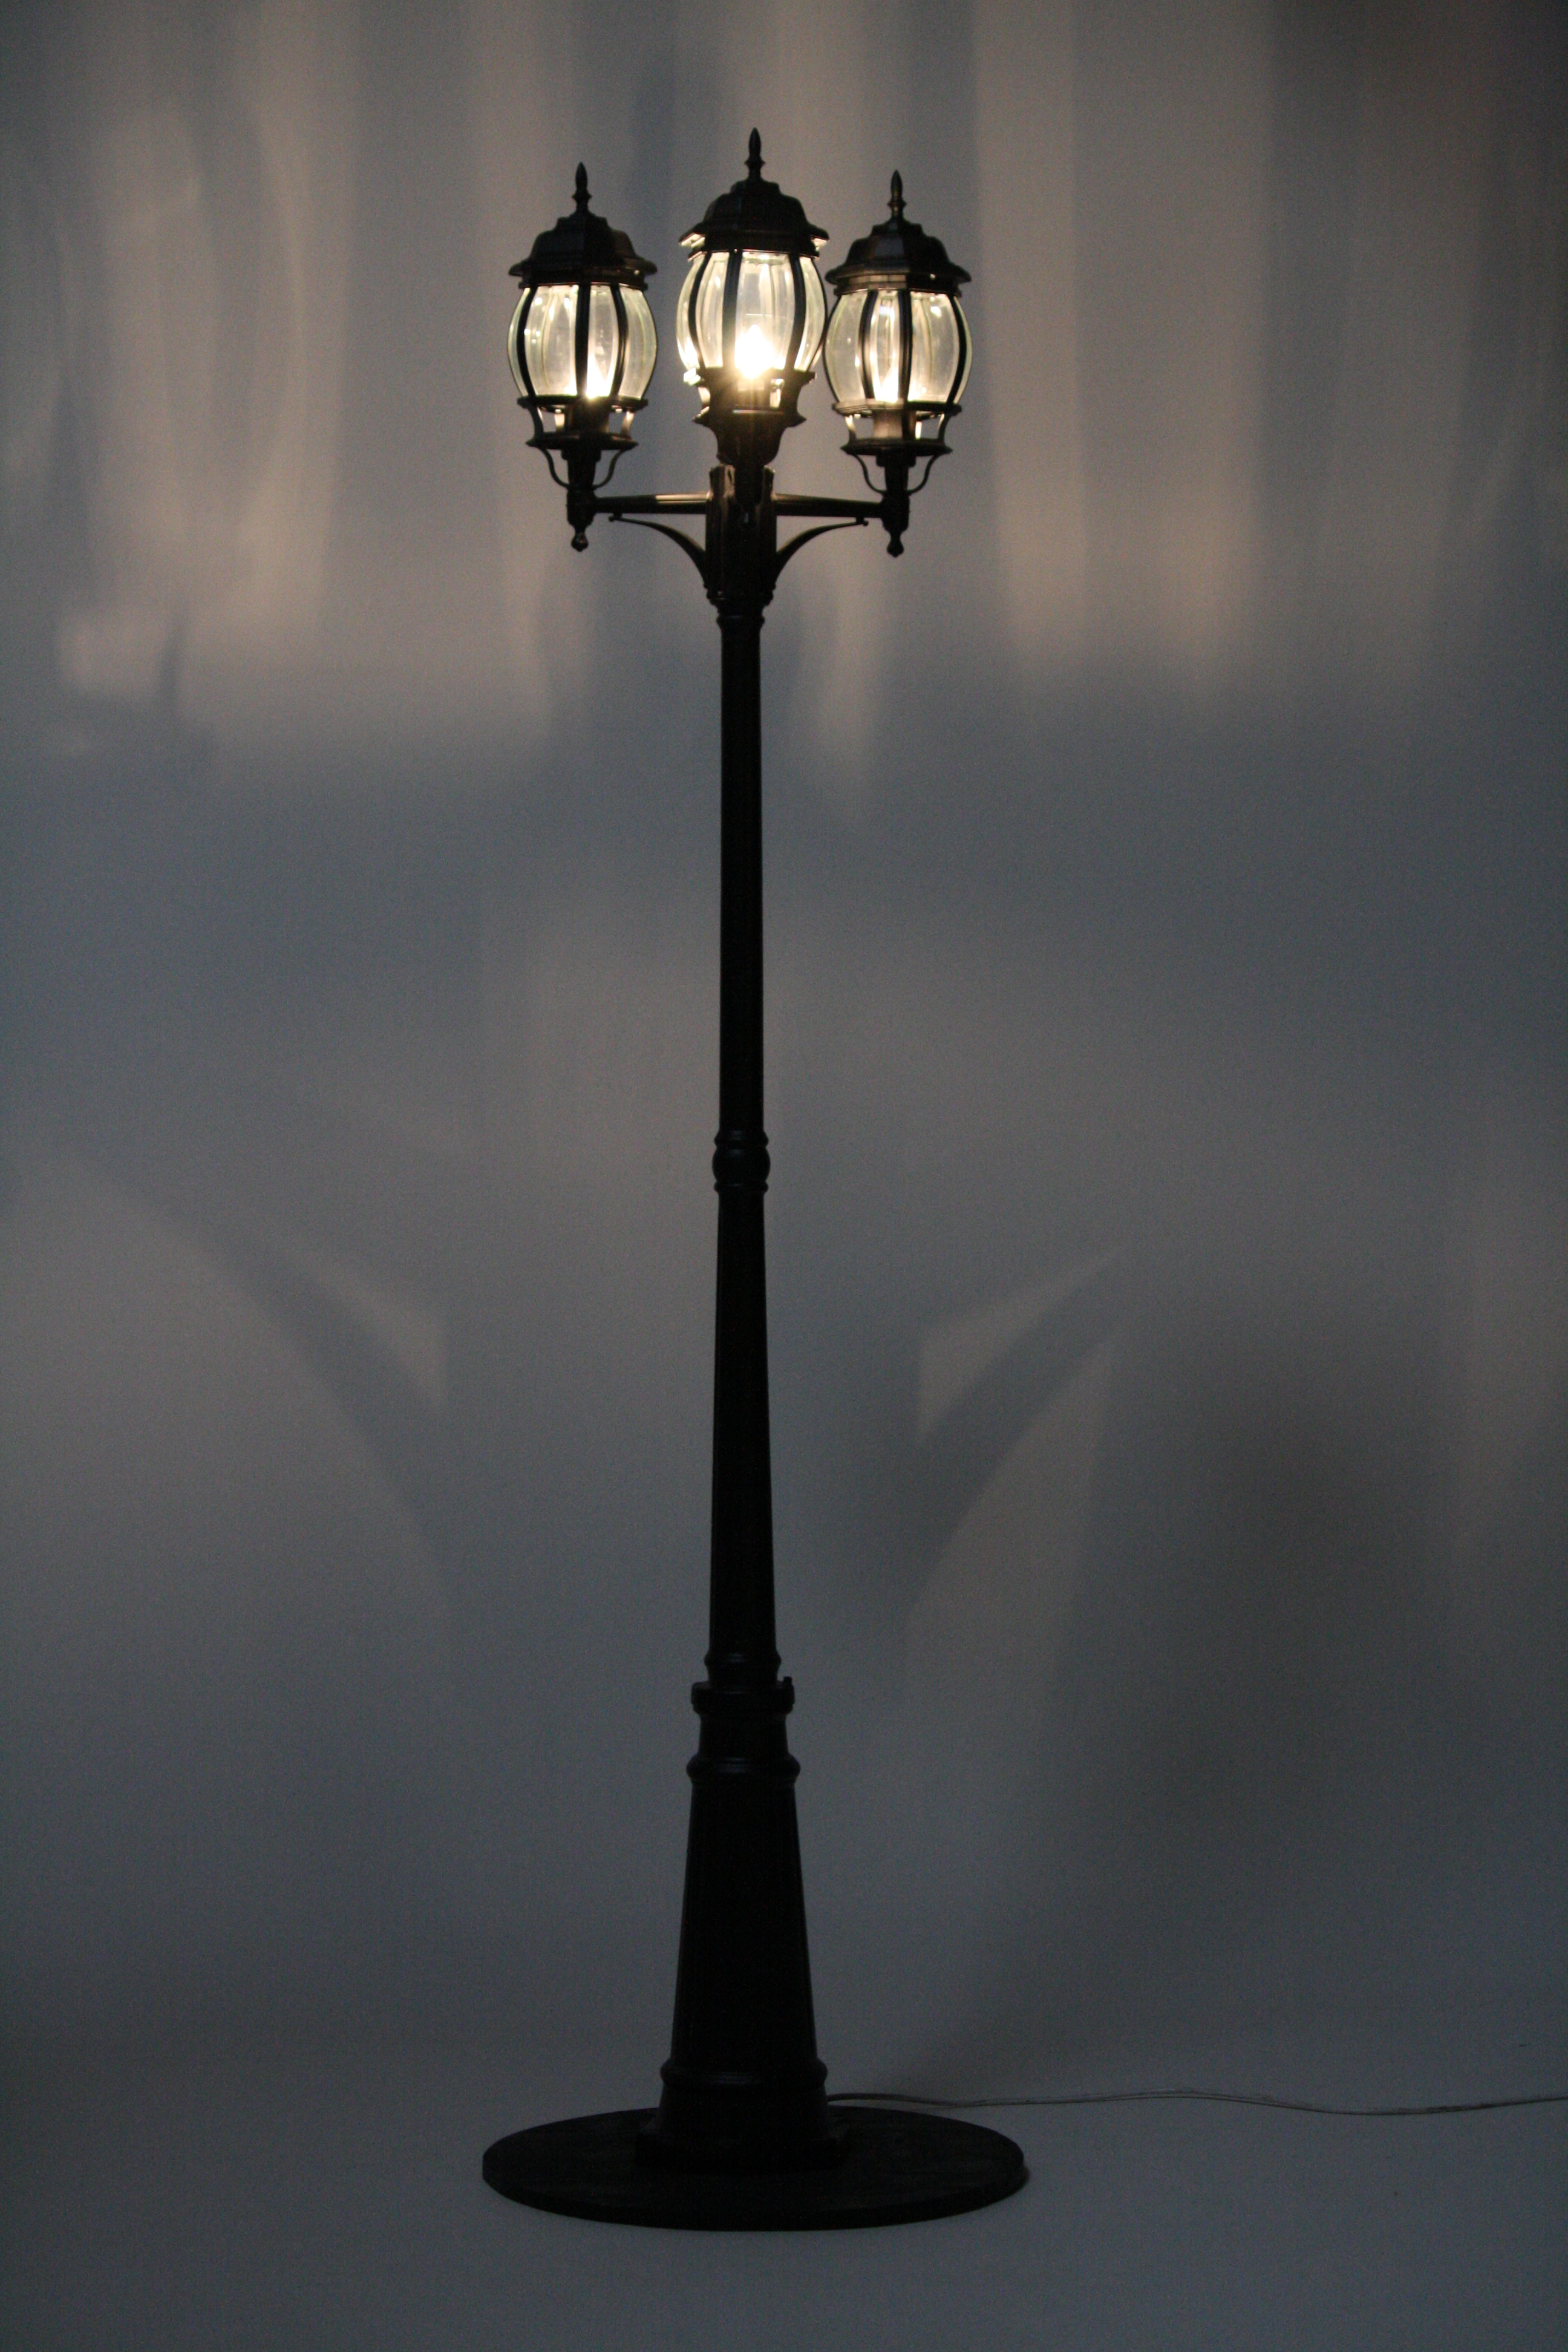 Lamp Post clipart traditional Free Street Free Public Photo